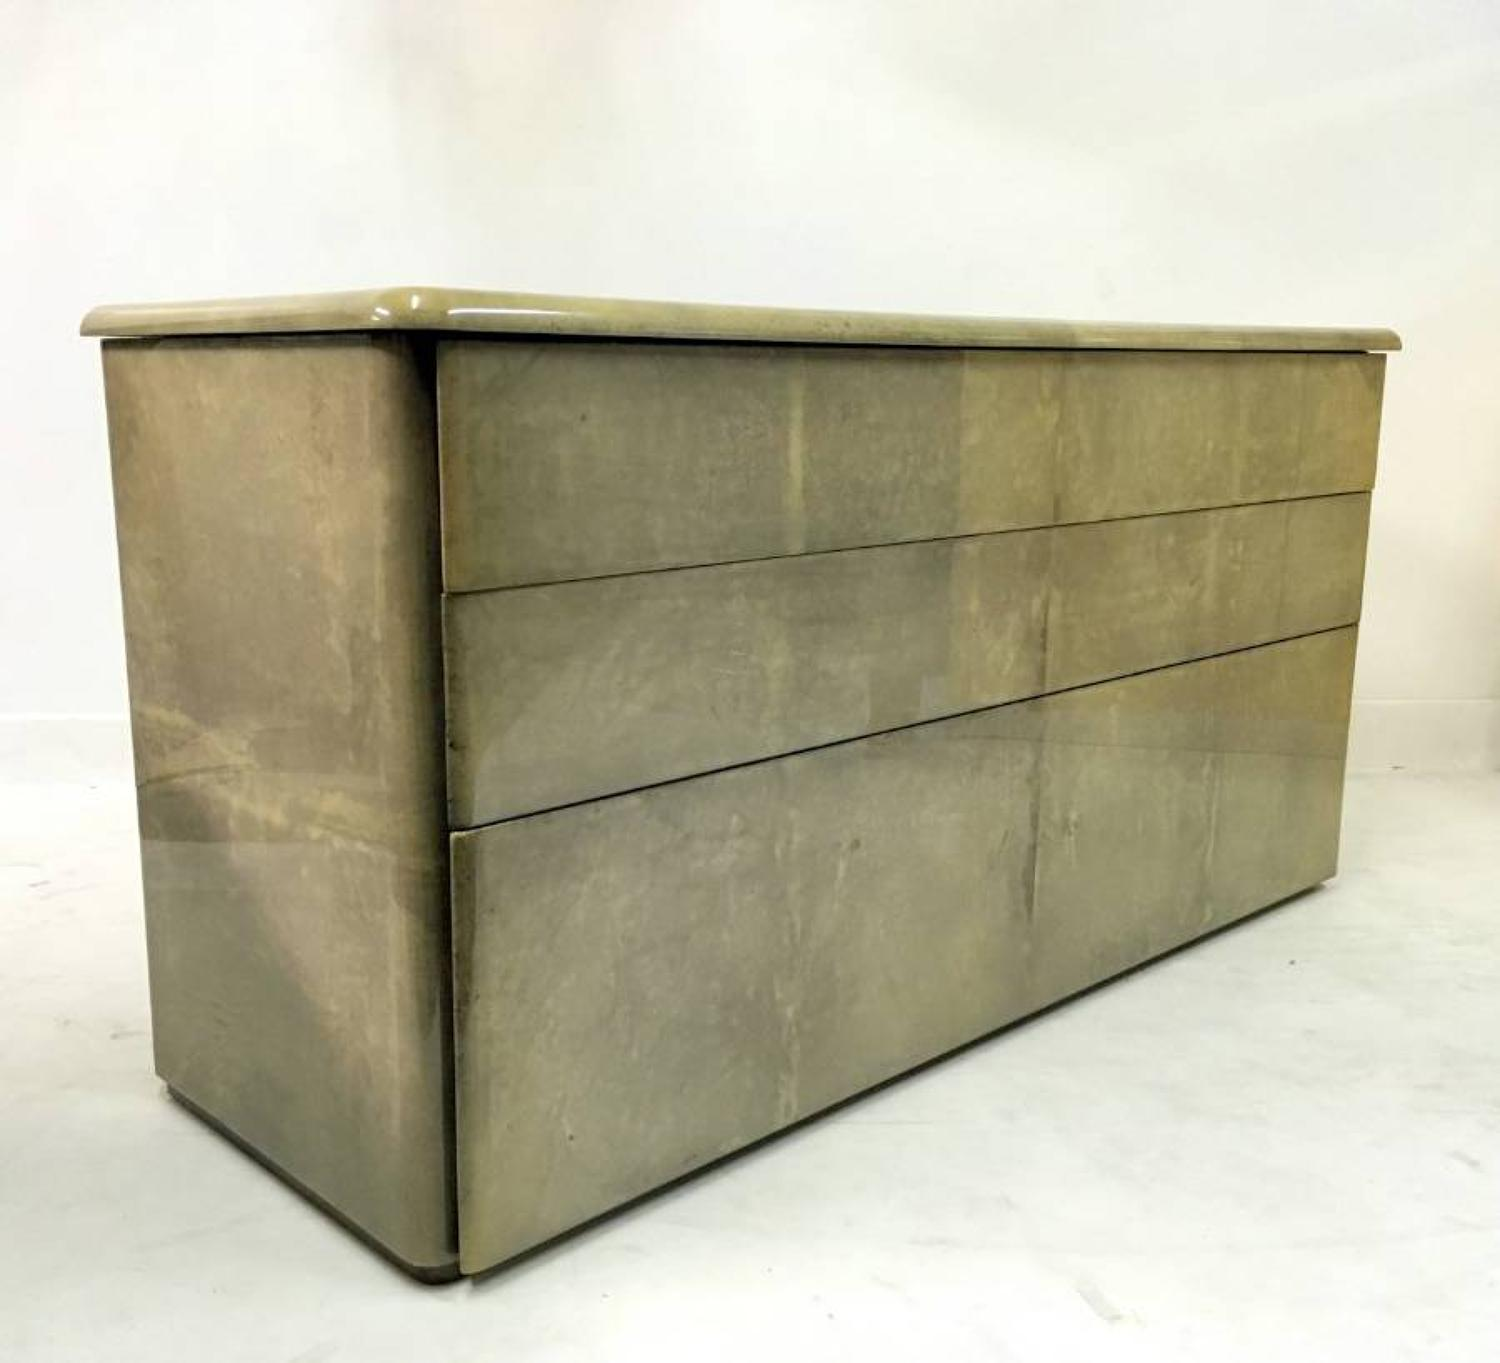 Lacquered goatskin or parchment chest of drawers